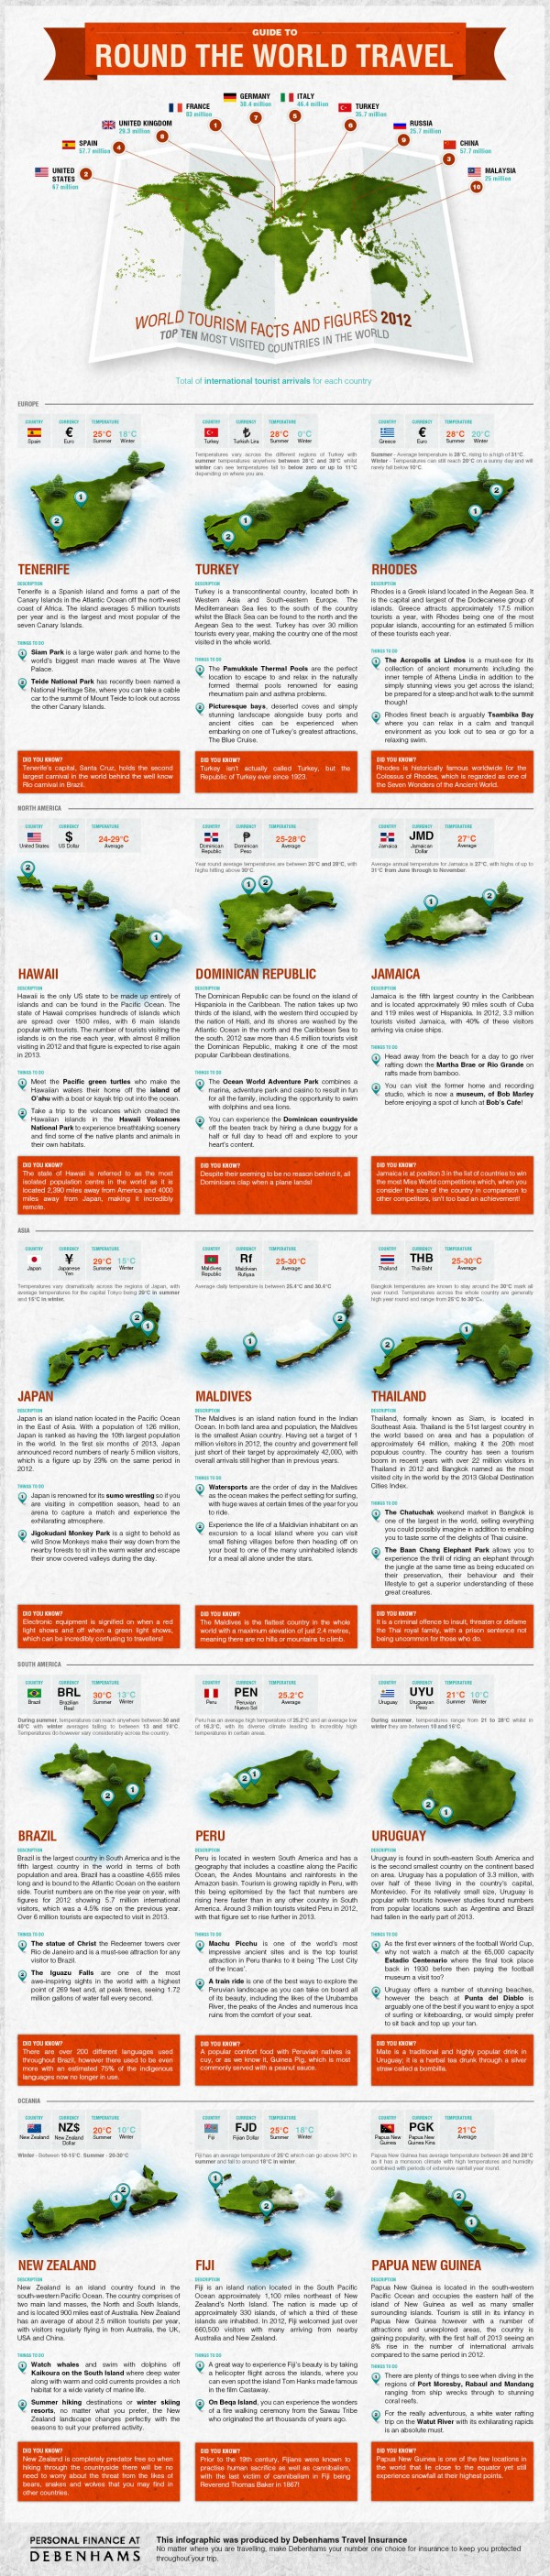 debenhams-guide-to-round-the-world-travel-infographic